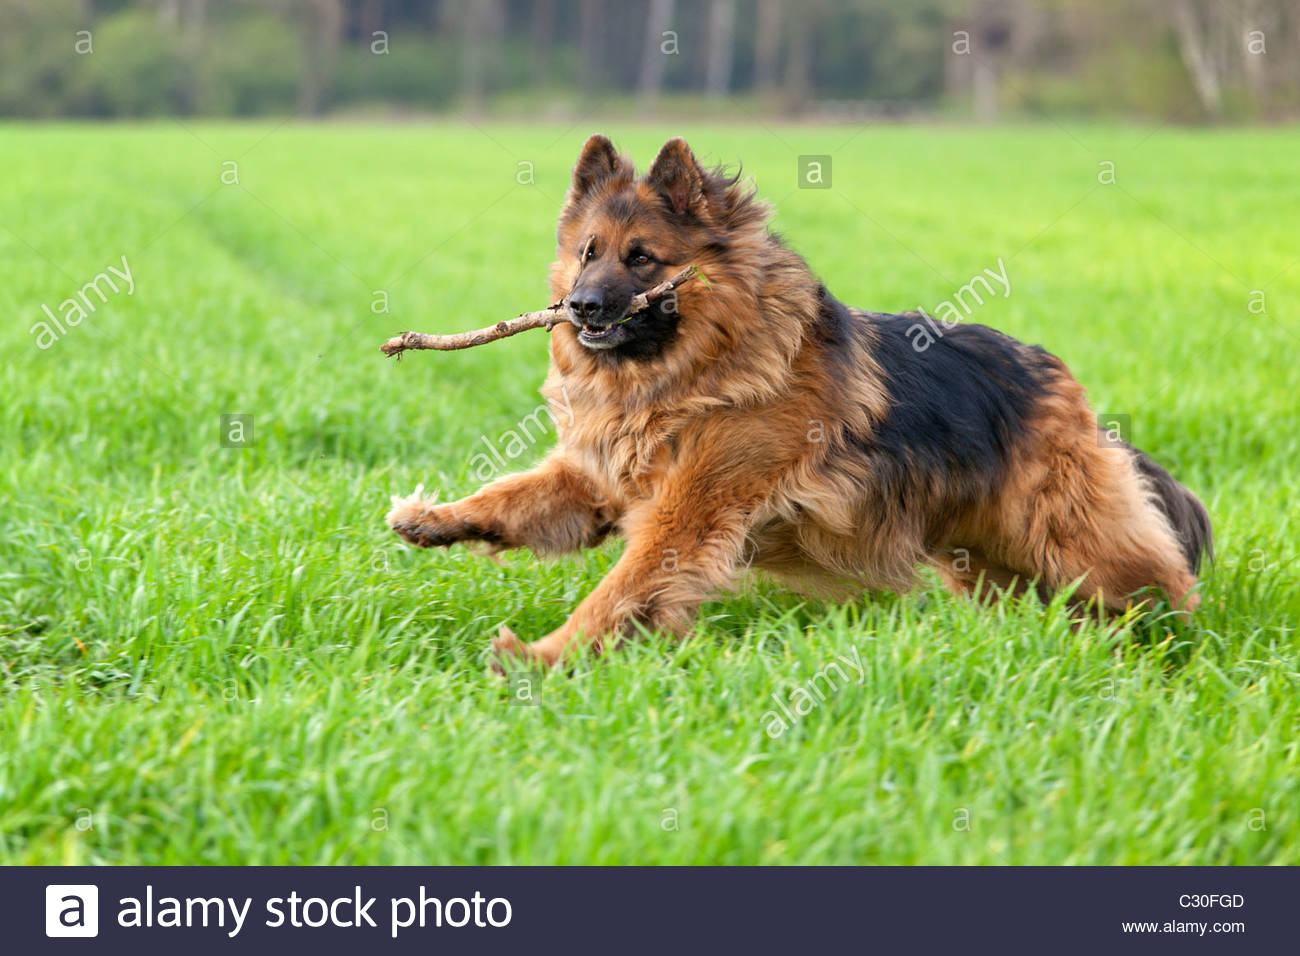 Long Hair German Shepherd Dog Running Through A Field